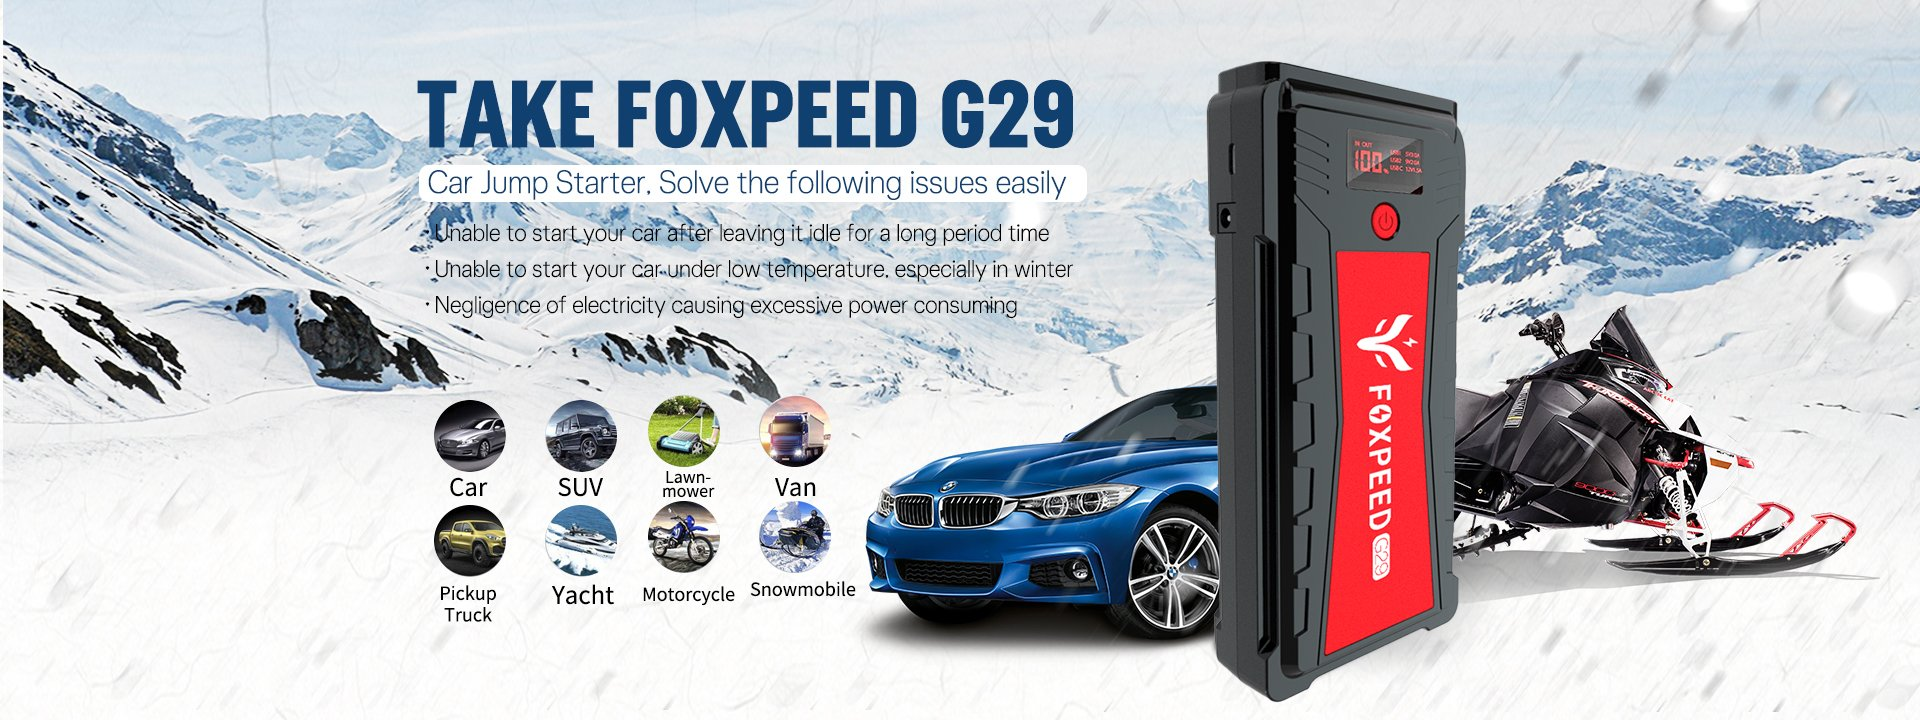 Foxpeed G29 Portable Car Jump Starter